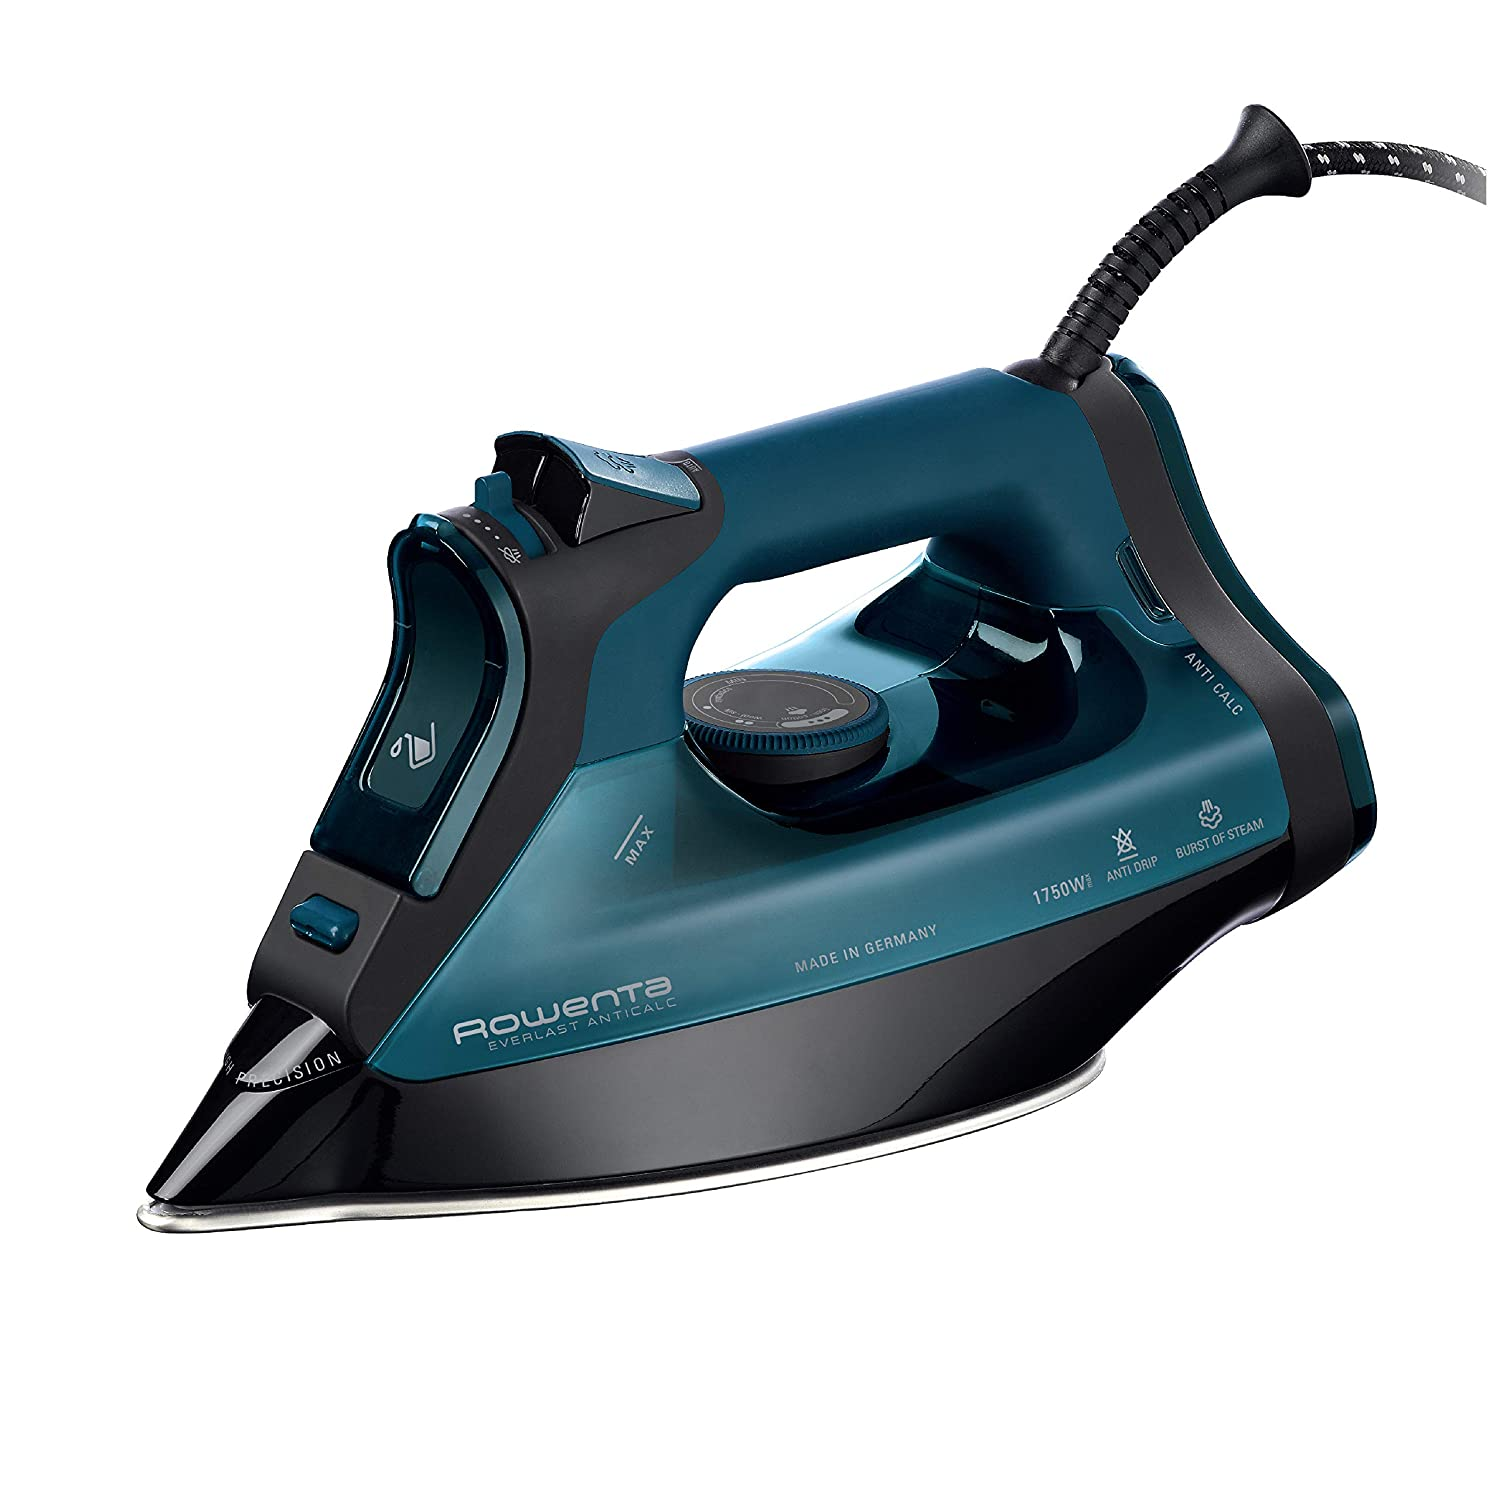 Best Steam Irons 2020.6 Best Steam Irons You Can Buy On The Market In 2020